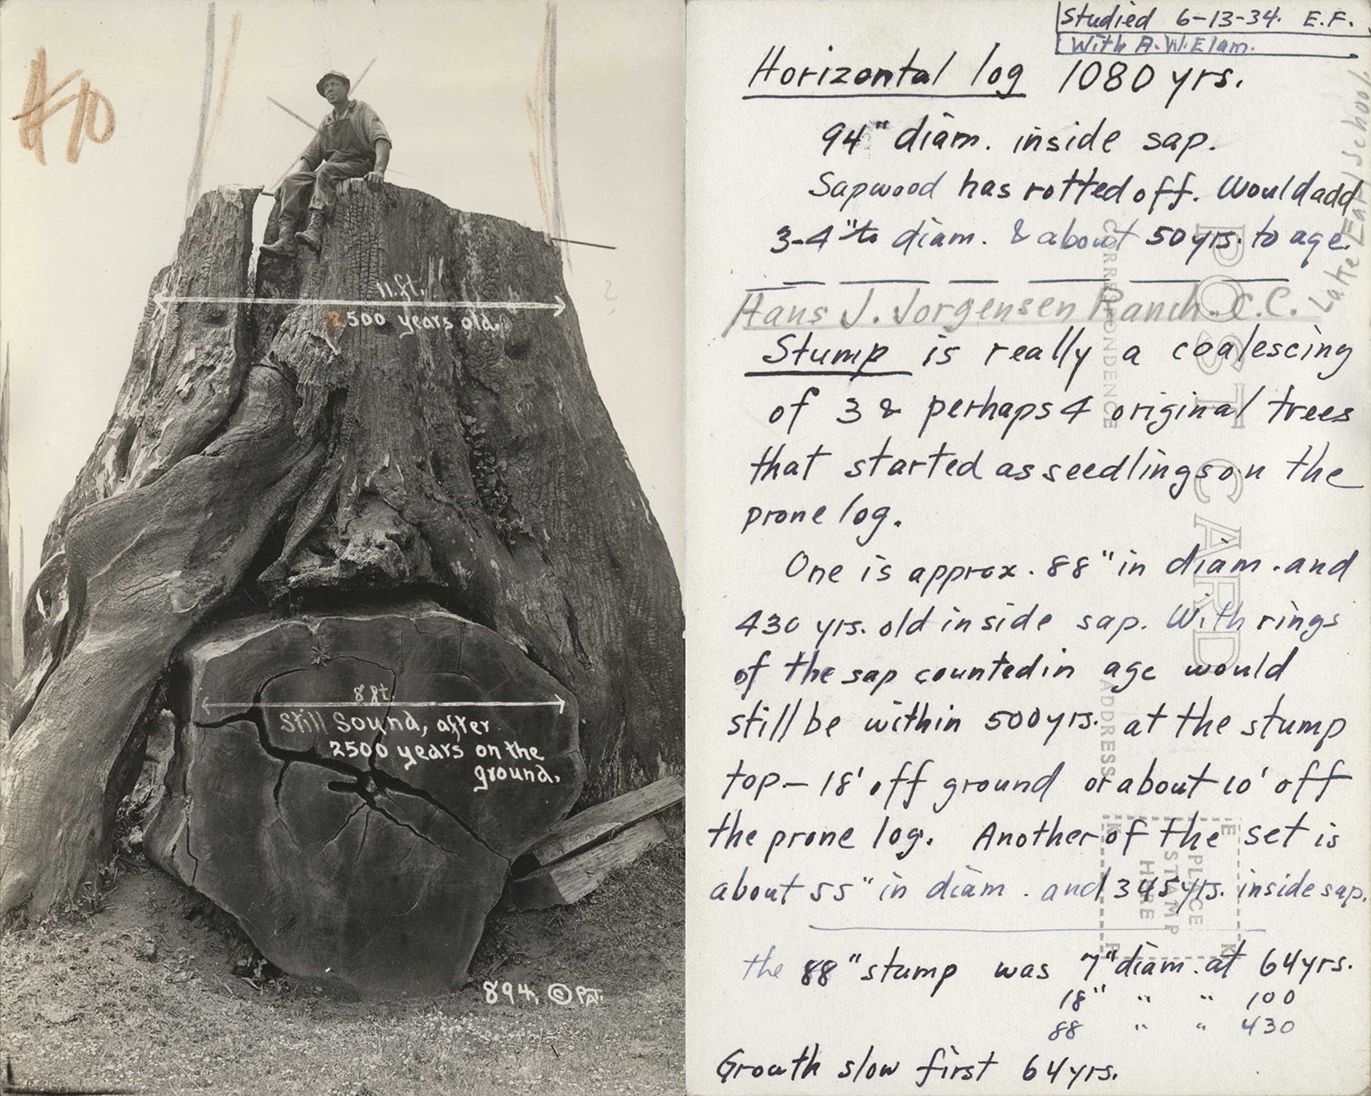 Postcard of tree stumps, recto and verso, with Emanuel Fritz's notes